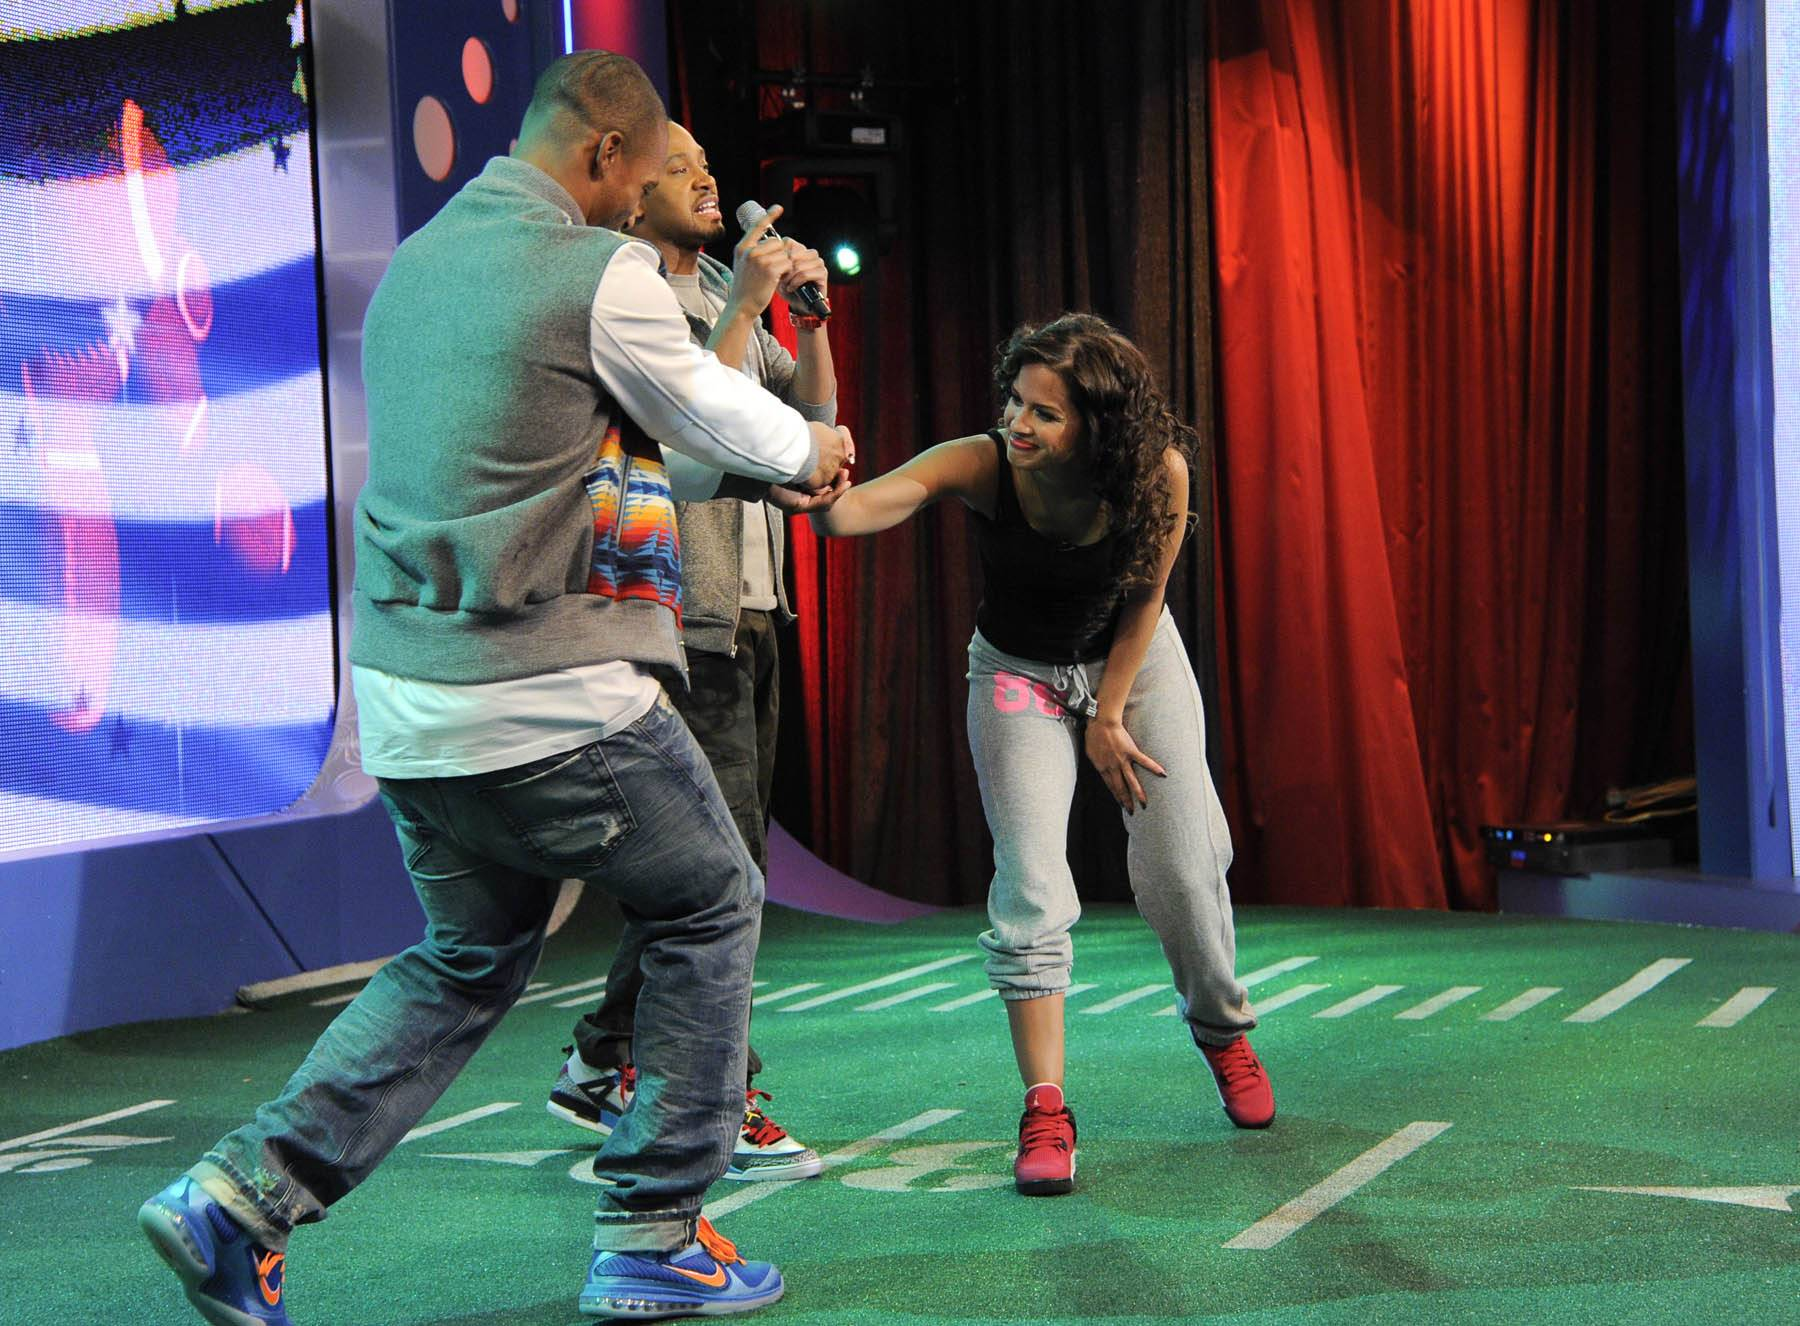 Must See - Victor Cruz and Rocsi Diaz make peace at the conclusion of their battle at 106 & Park, January 26, 2012. (Photo: John Ricard / BET)